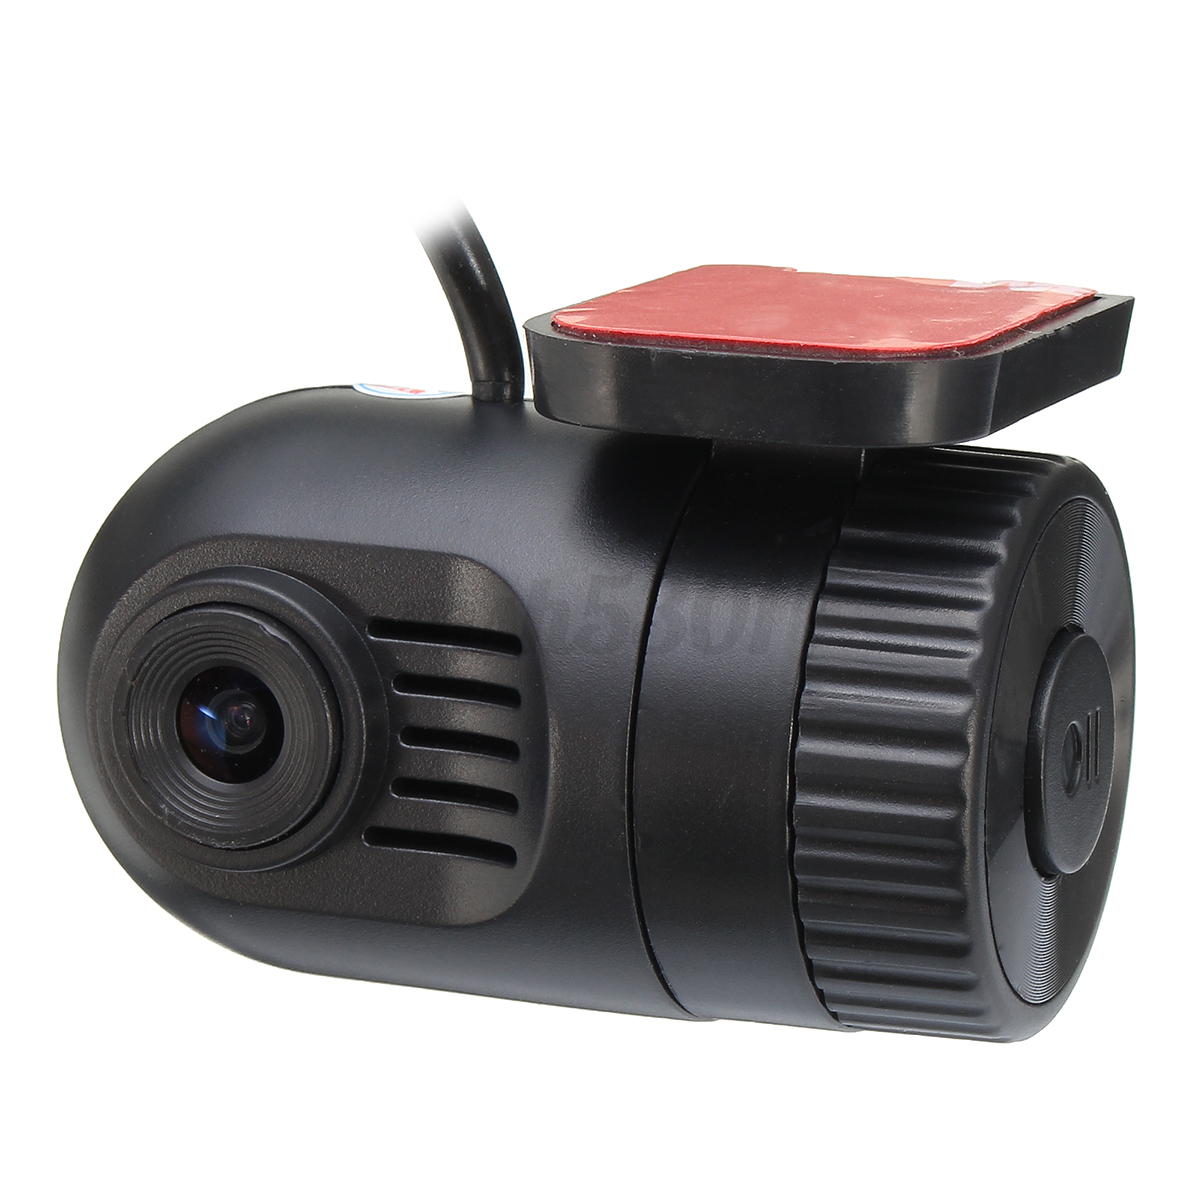 mini full hd 1080p car dvr g sensor video recorder vehicle. Black Bedroom Furniture Sets. Home Design Ideas